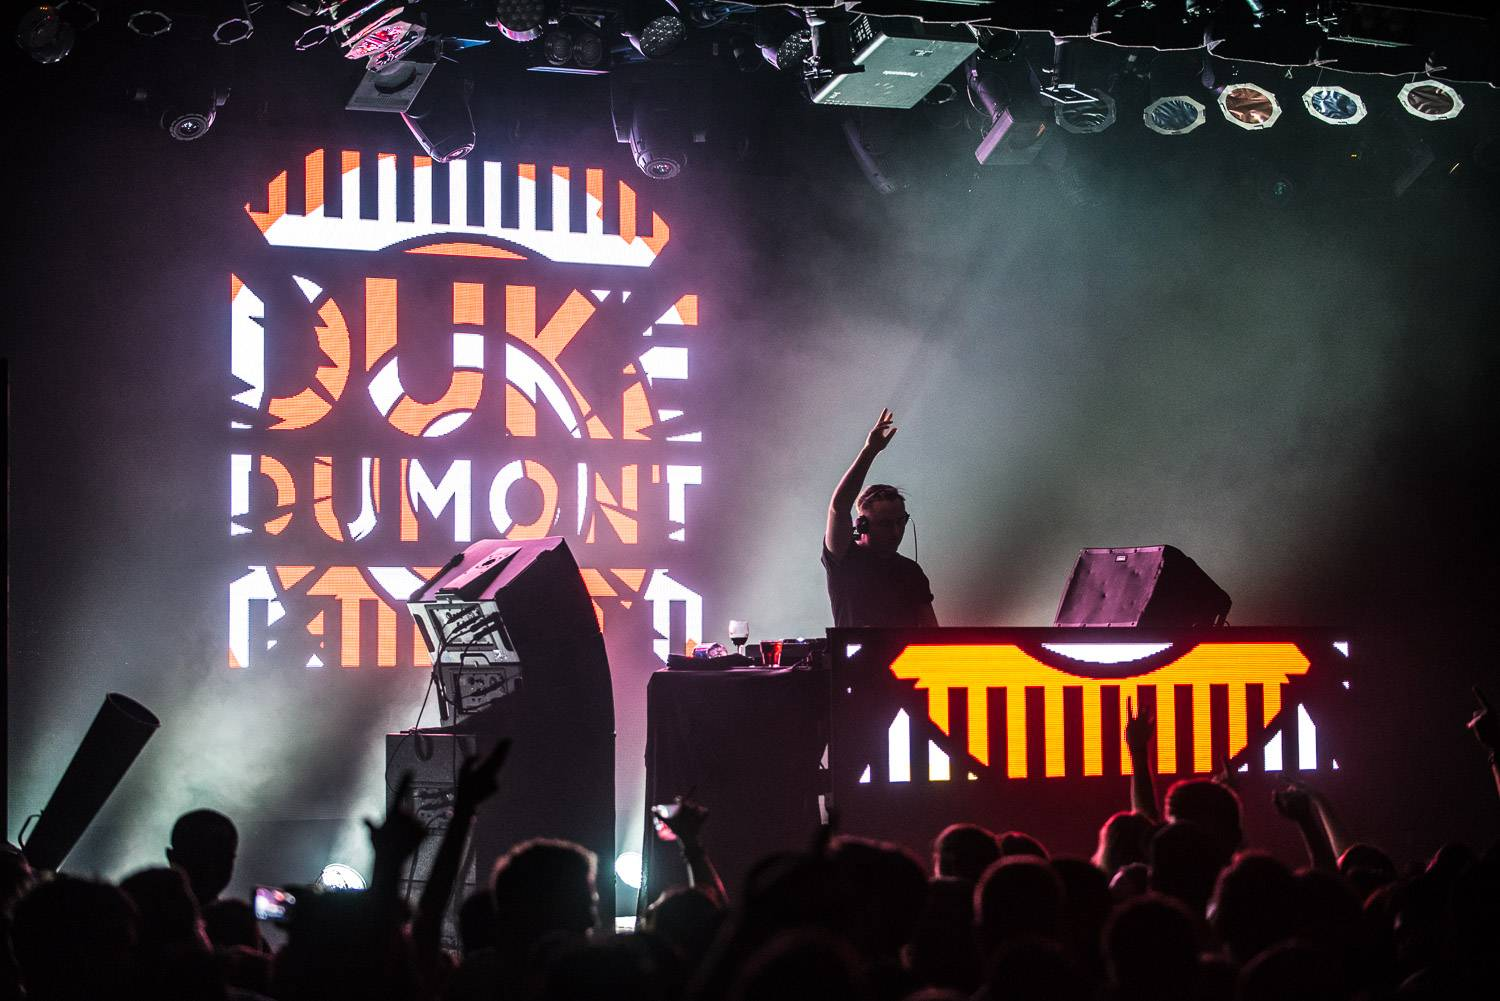 Duke Dumont at the Commodore Ballroom, Vancouver, Apr. 7 2017. Pavel Boiko photo.